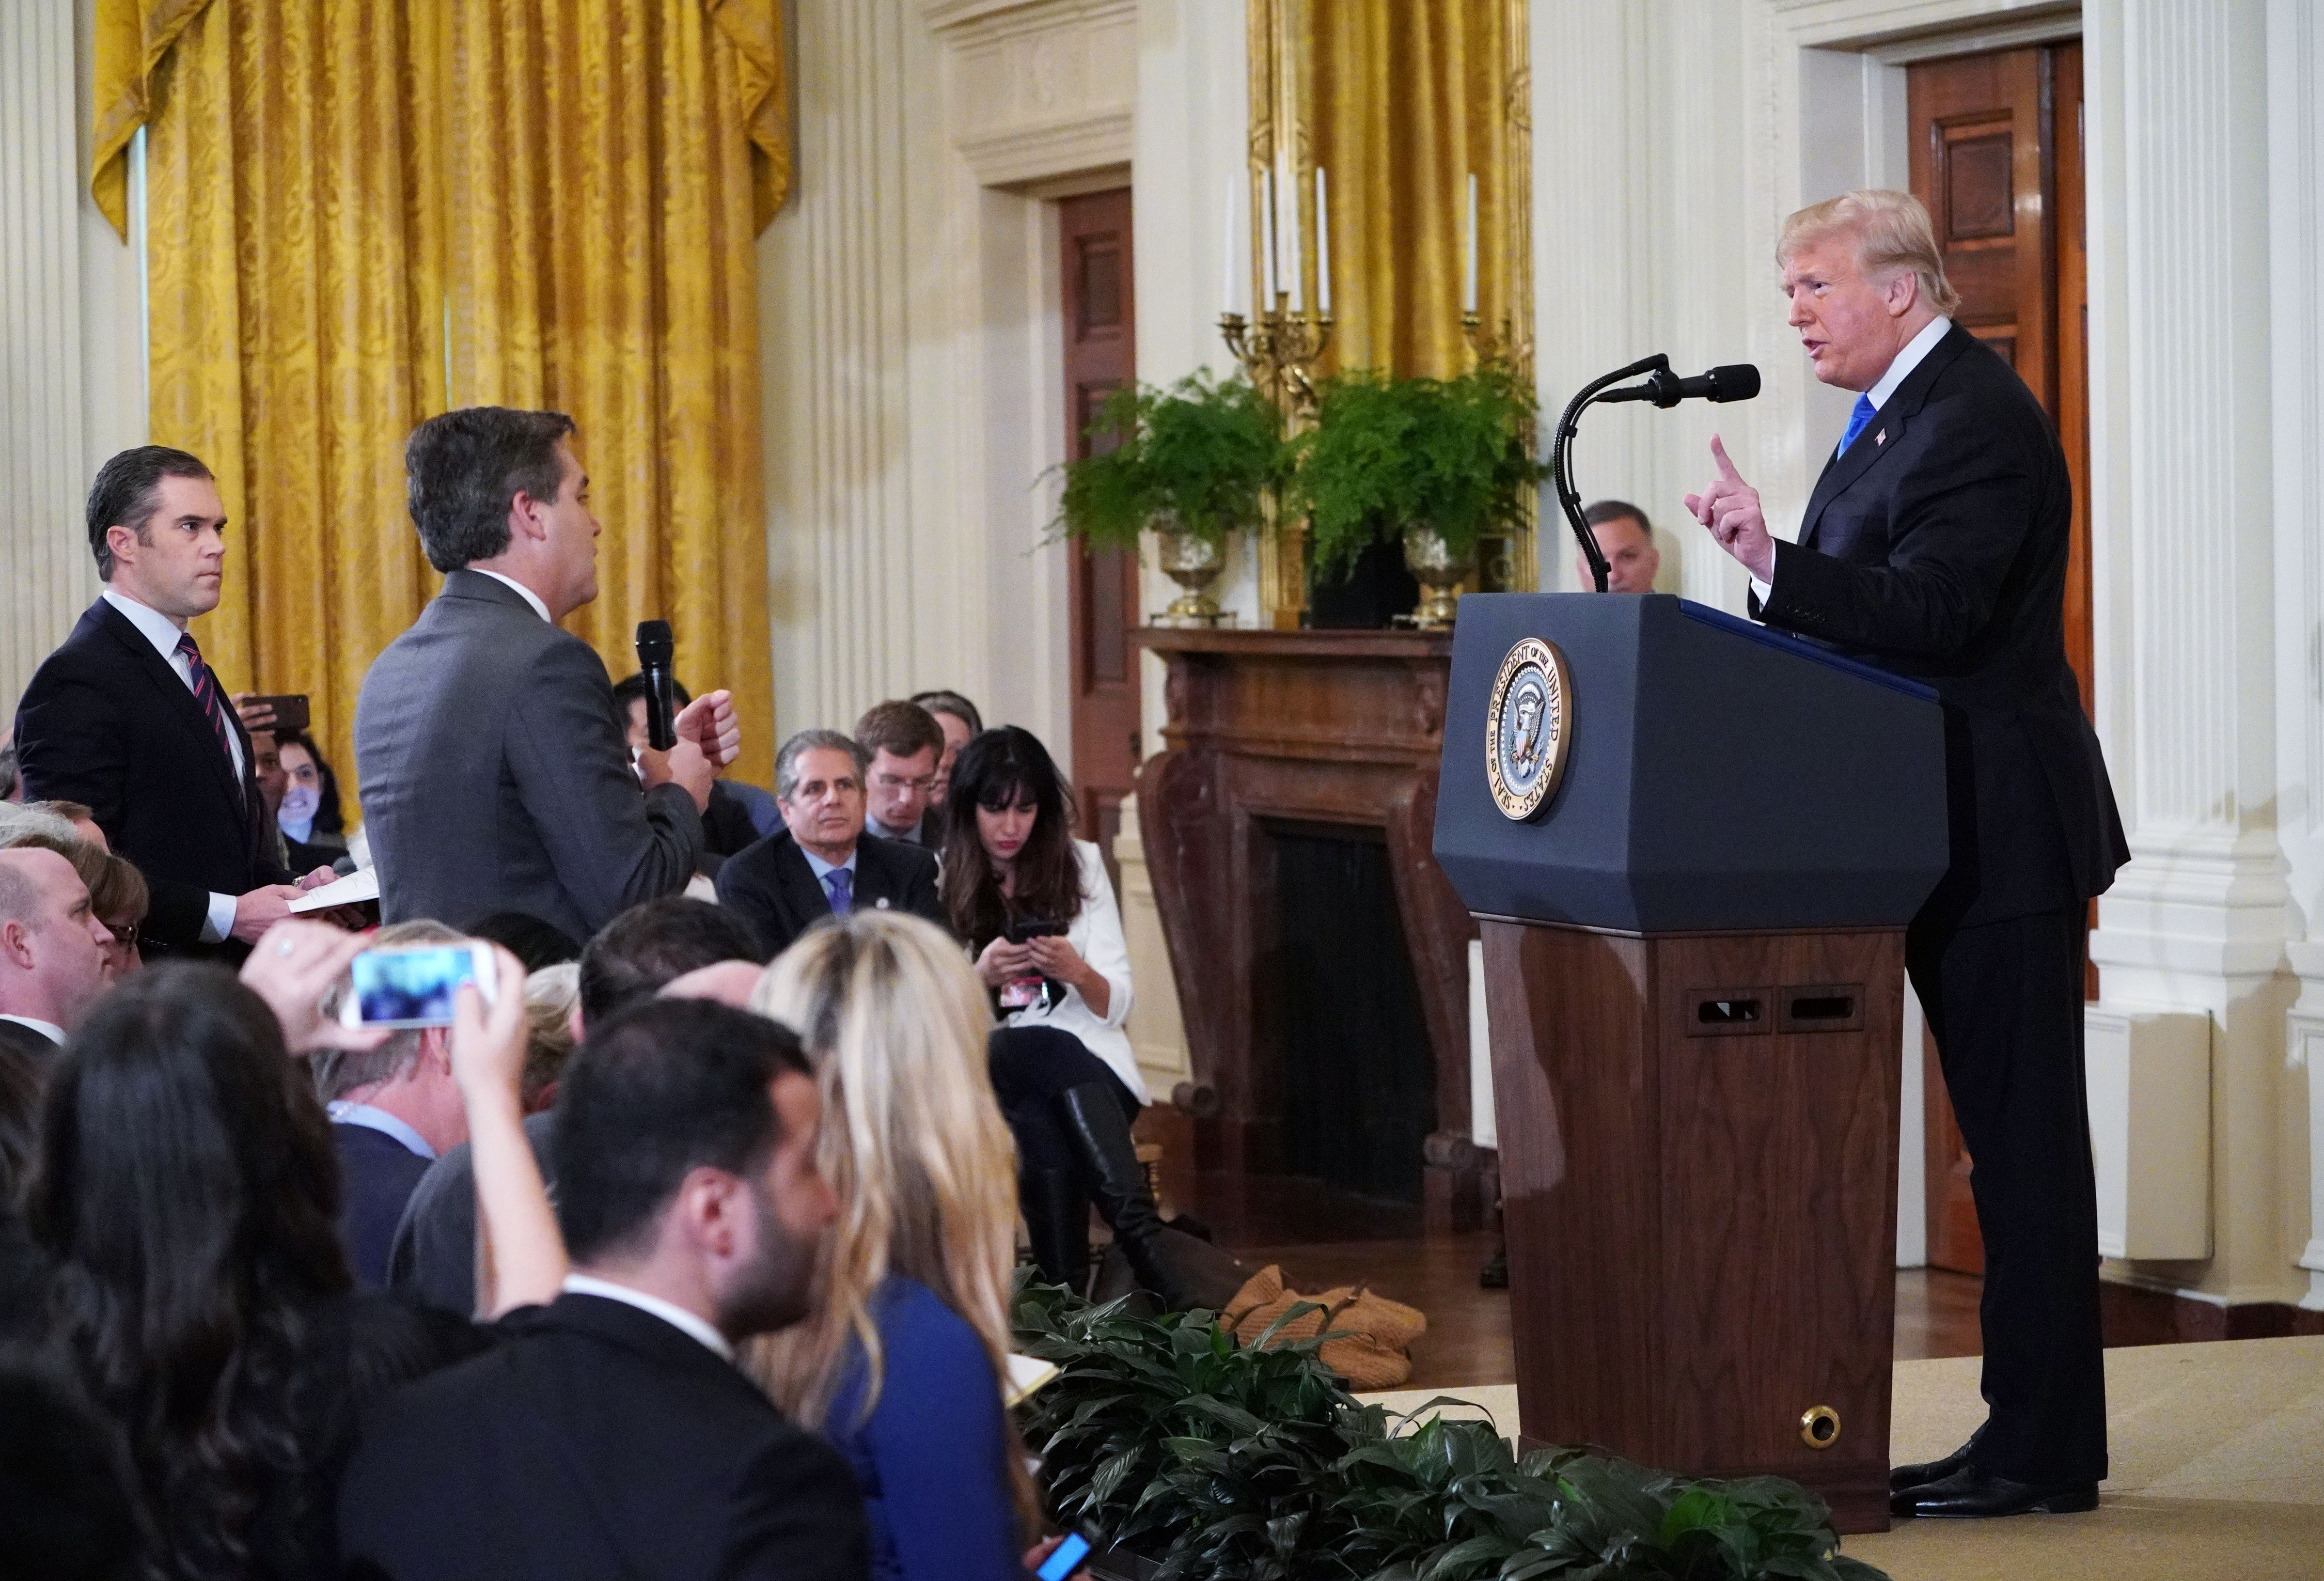 US President Donald Trump (R) gets into a heated exchange with CNN chief White House correspondent Jim Acosta (C) / MANDEL NGAN/AFP/Getty Images